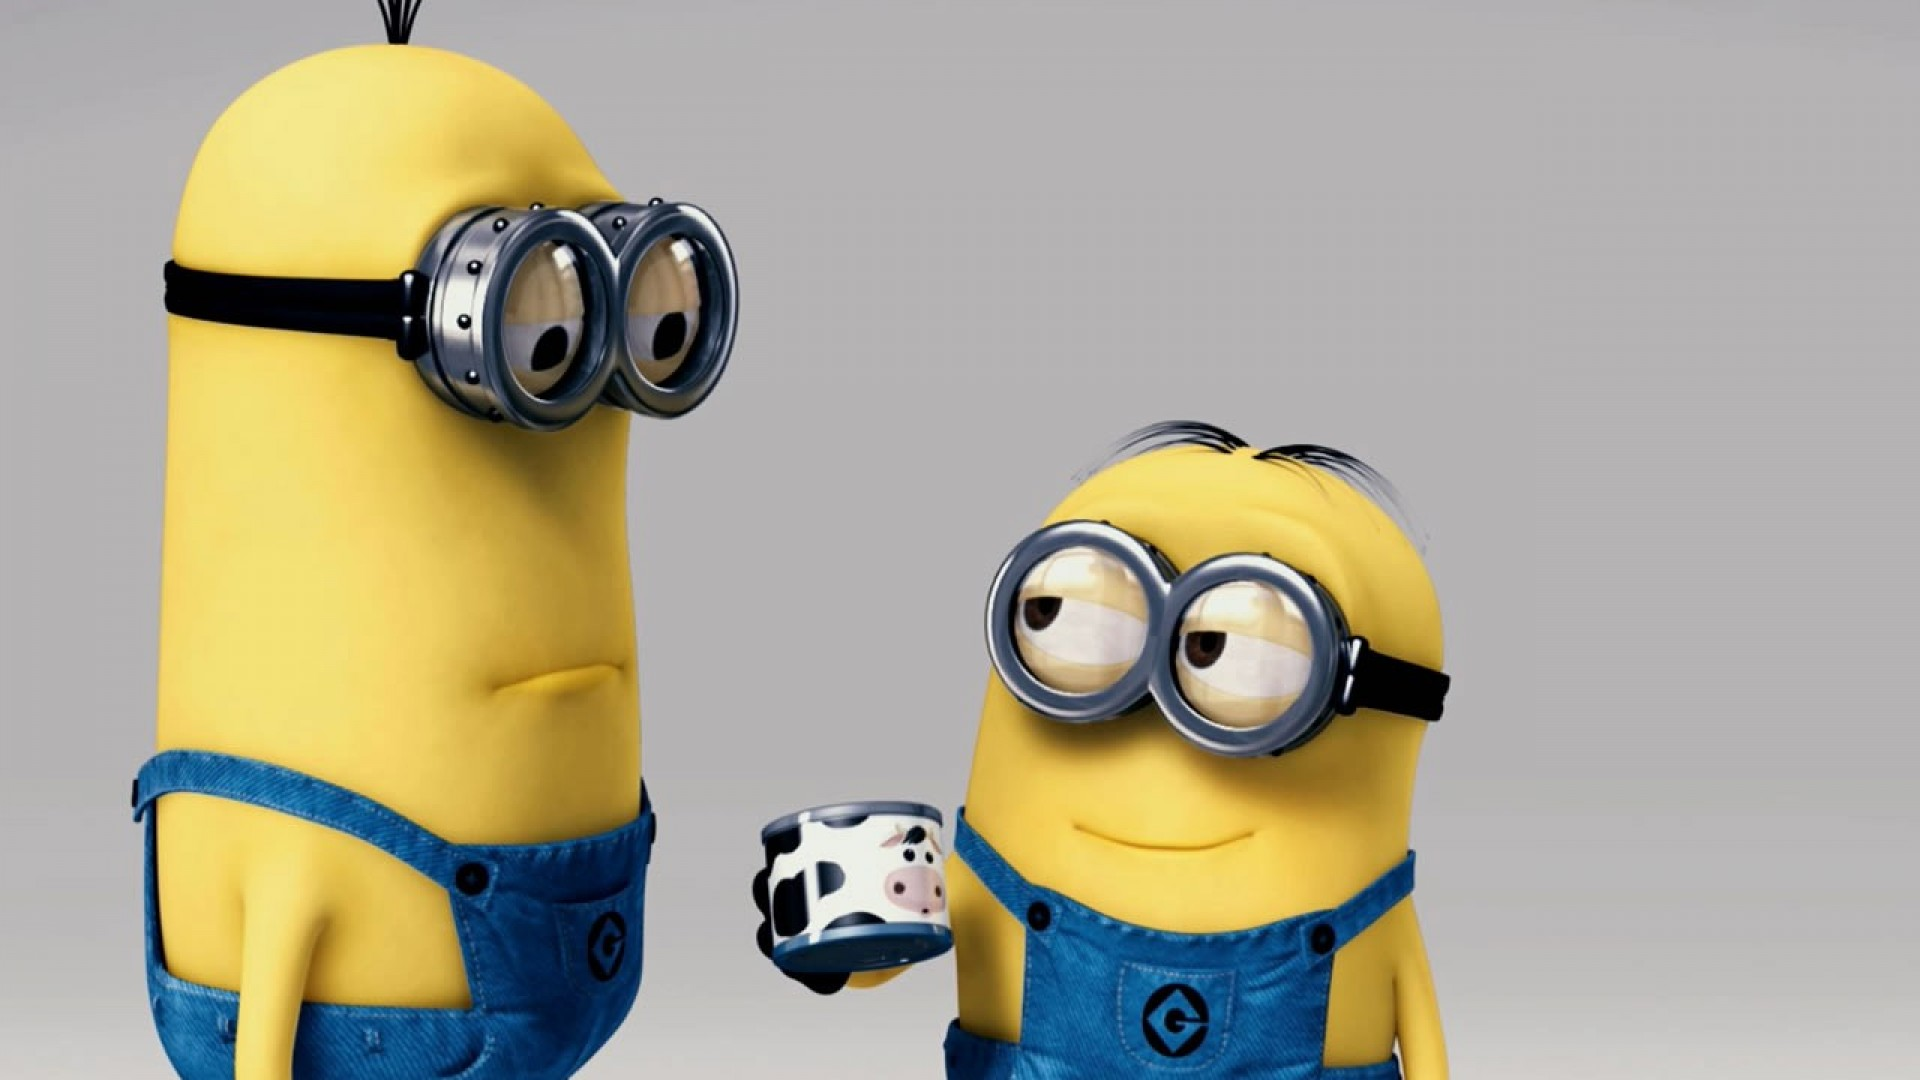 Funny Minions Wallpaper Picture   Wallpapers Mela 1920x1080